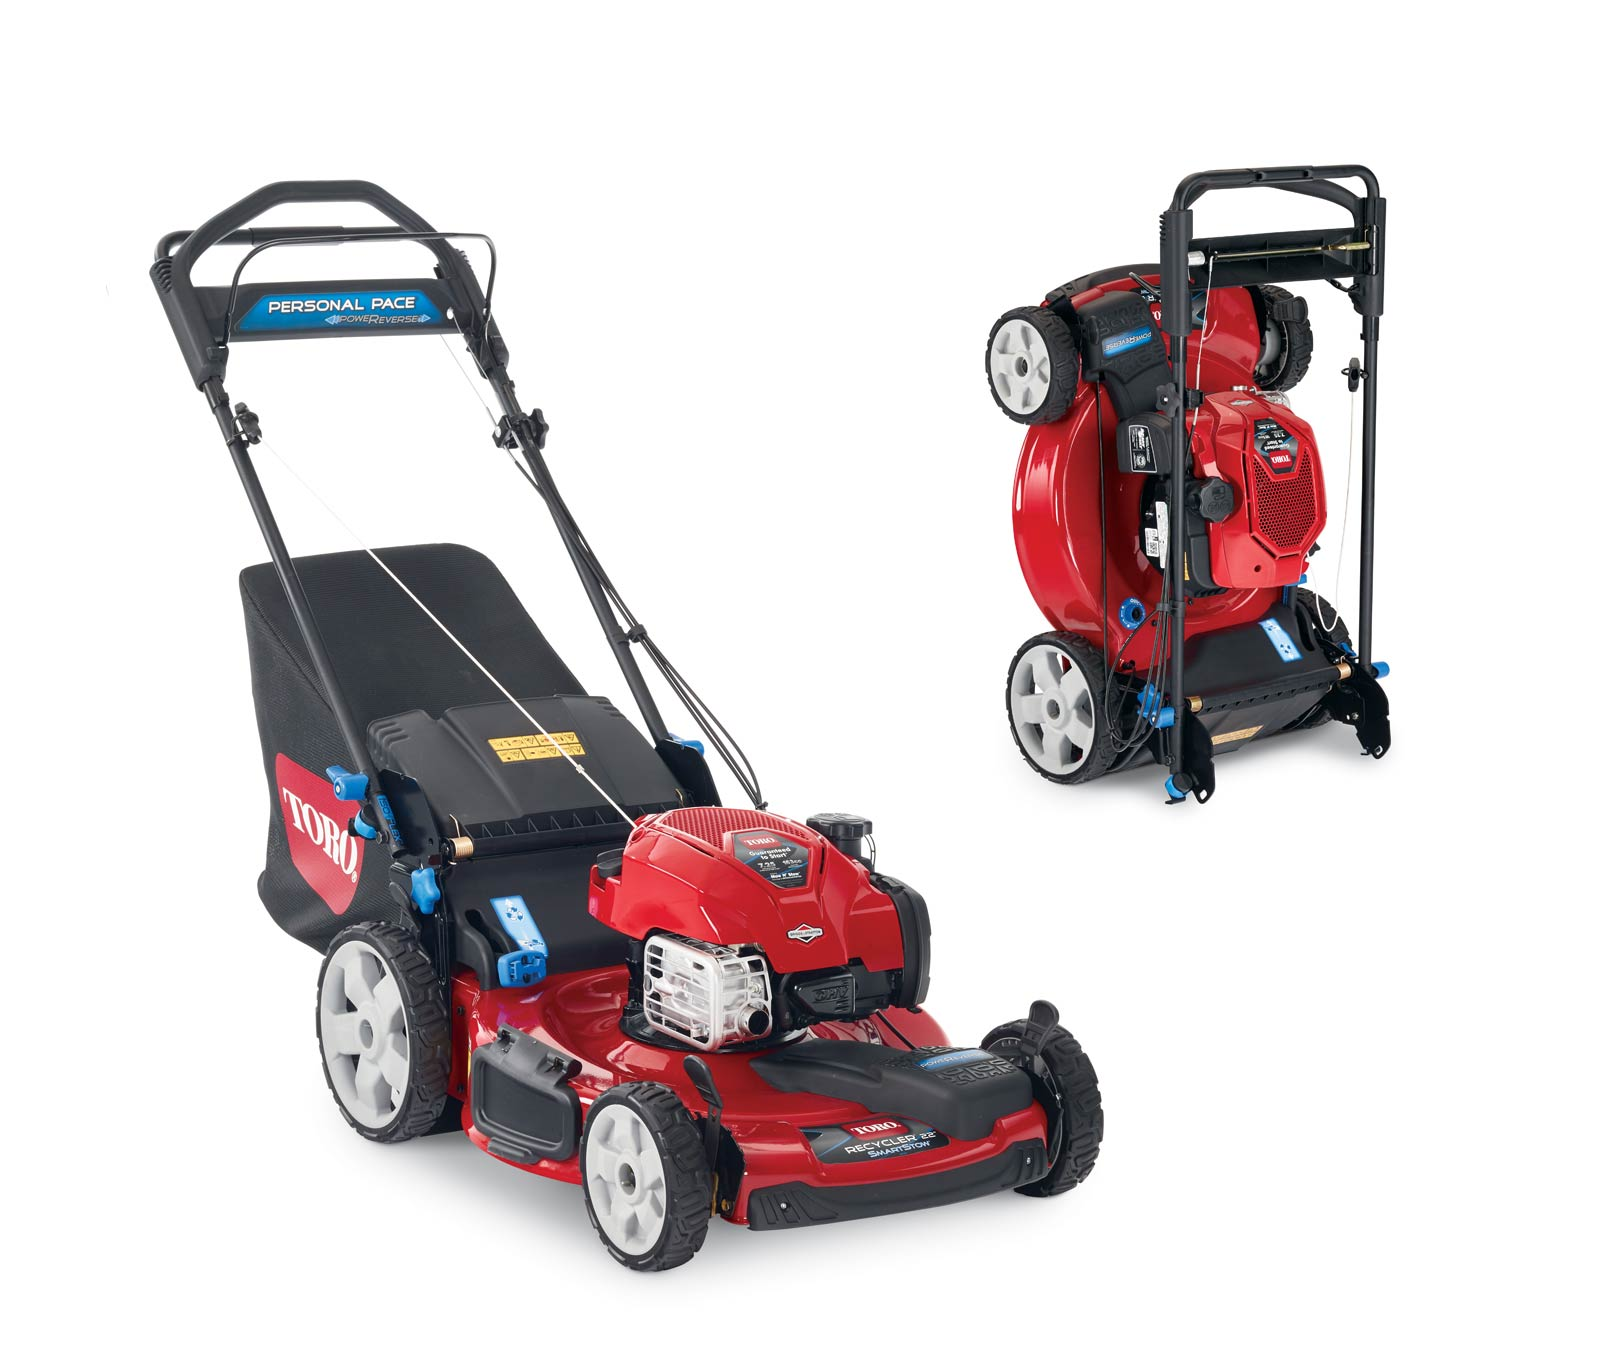 "This review is from22"" (56cm) PoweReverse™ Personal Pace High Wheel Mower  (20355)."